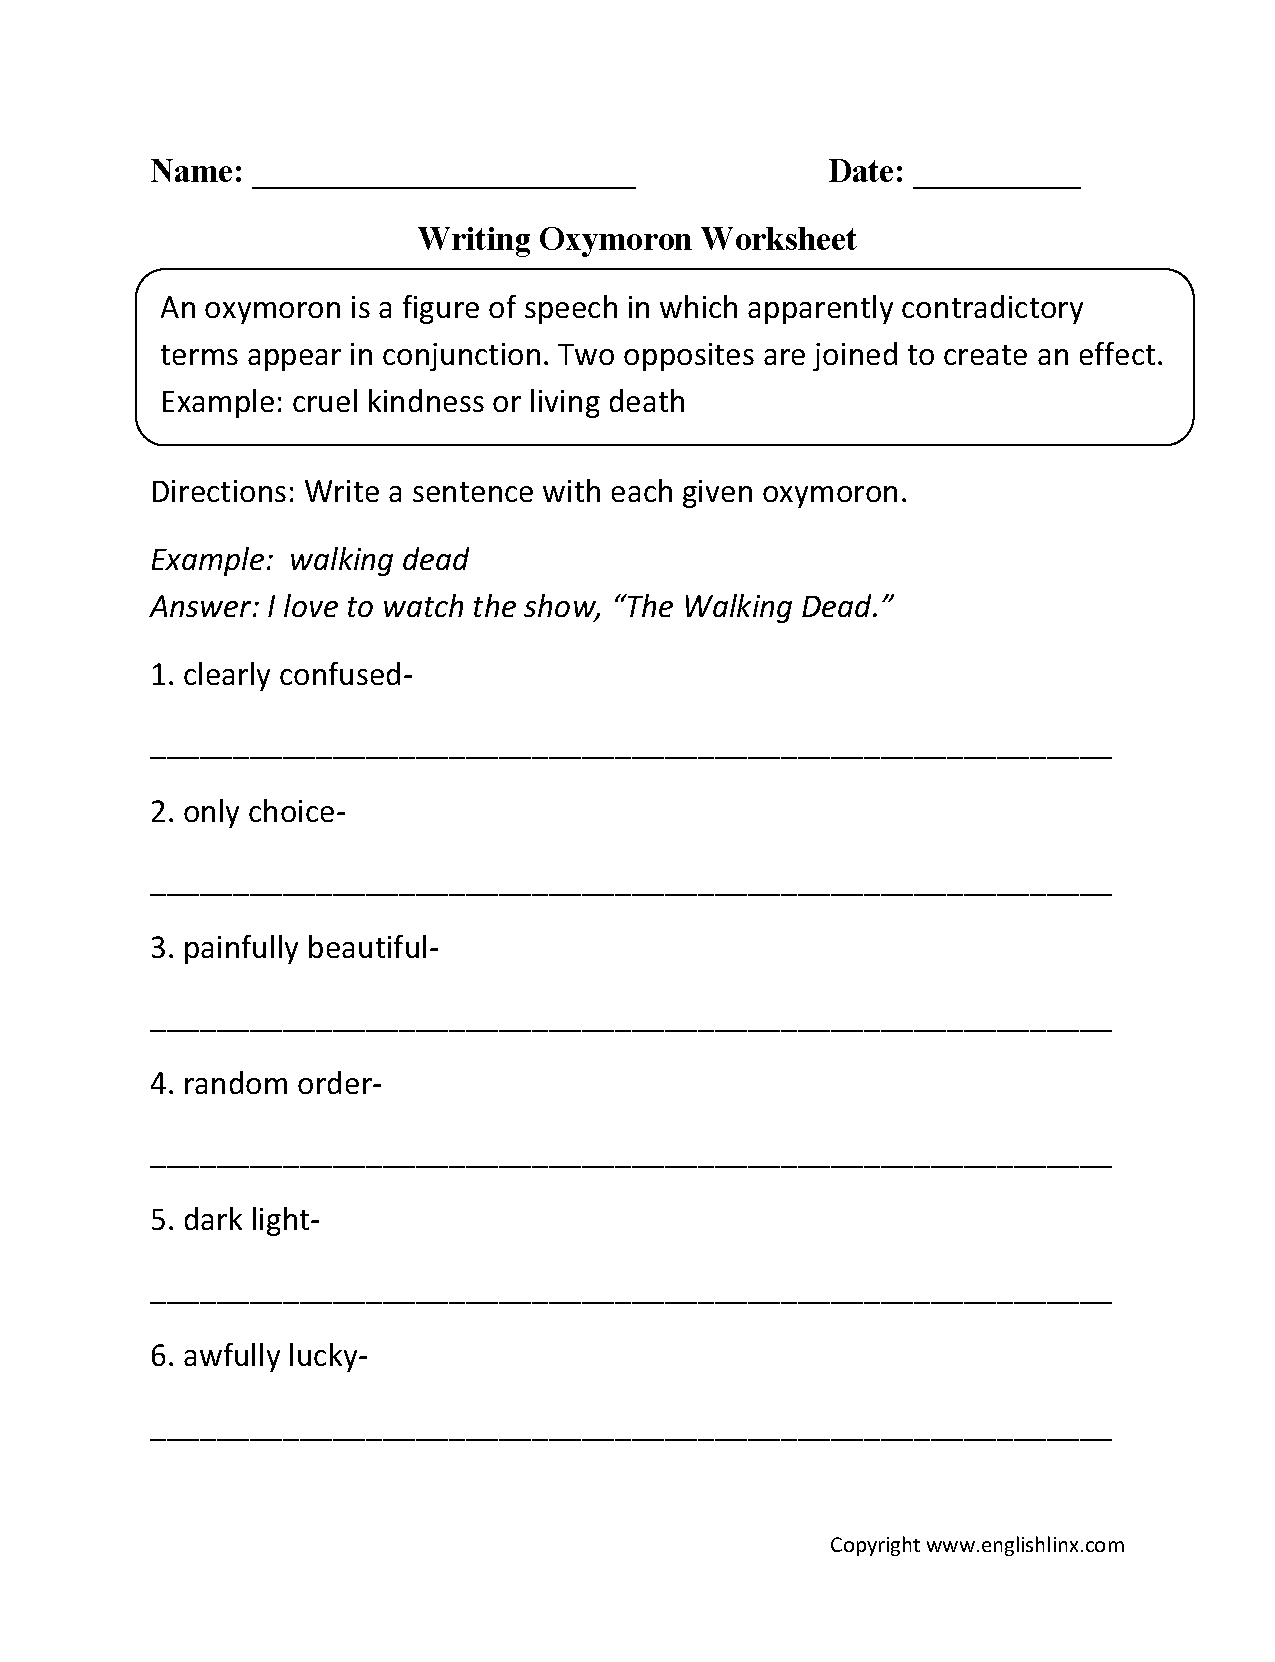 Worksheets Figurative Language Worksheet worksheet figurative language worksheets pdf grass fedjp oxymoron word sounds onomatopoeia worksheet